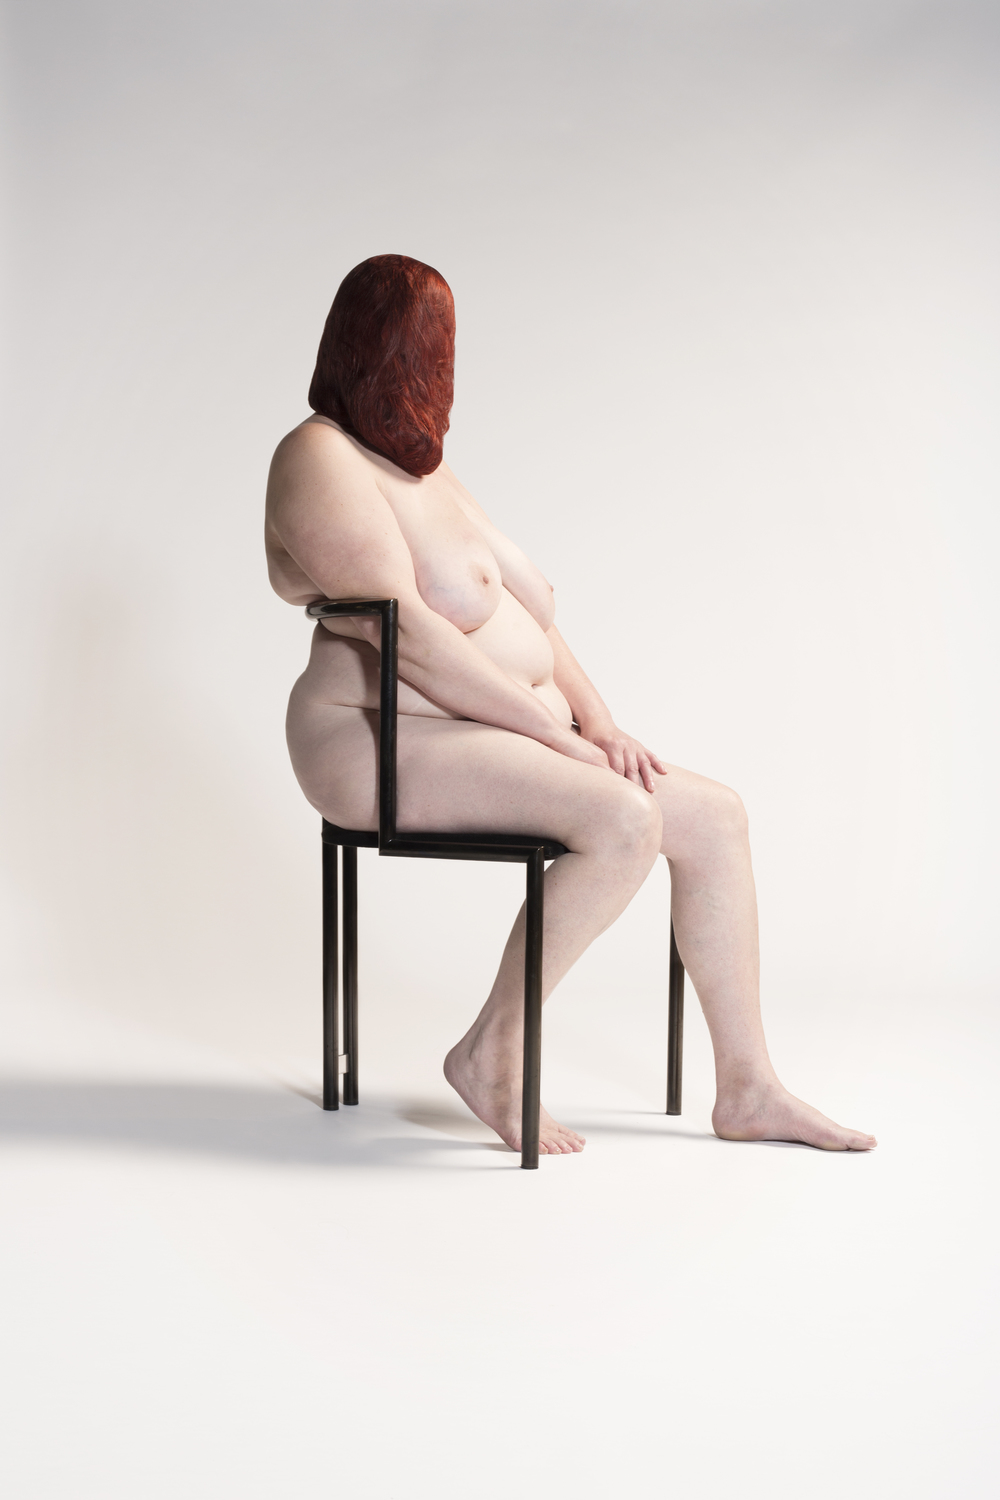 Opus chair - designed by Axel Enthoven